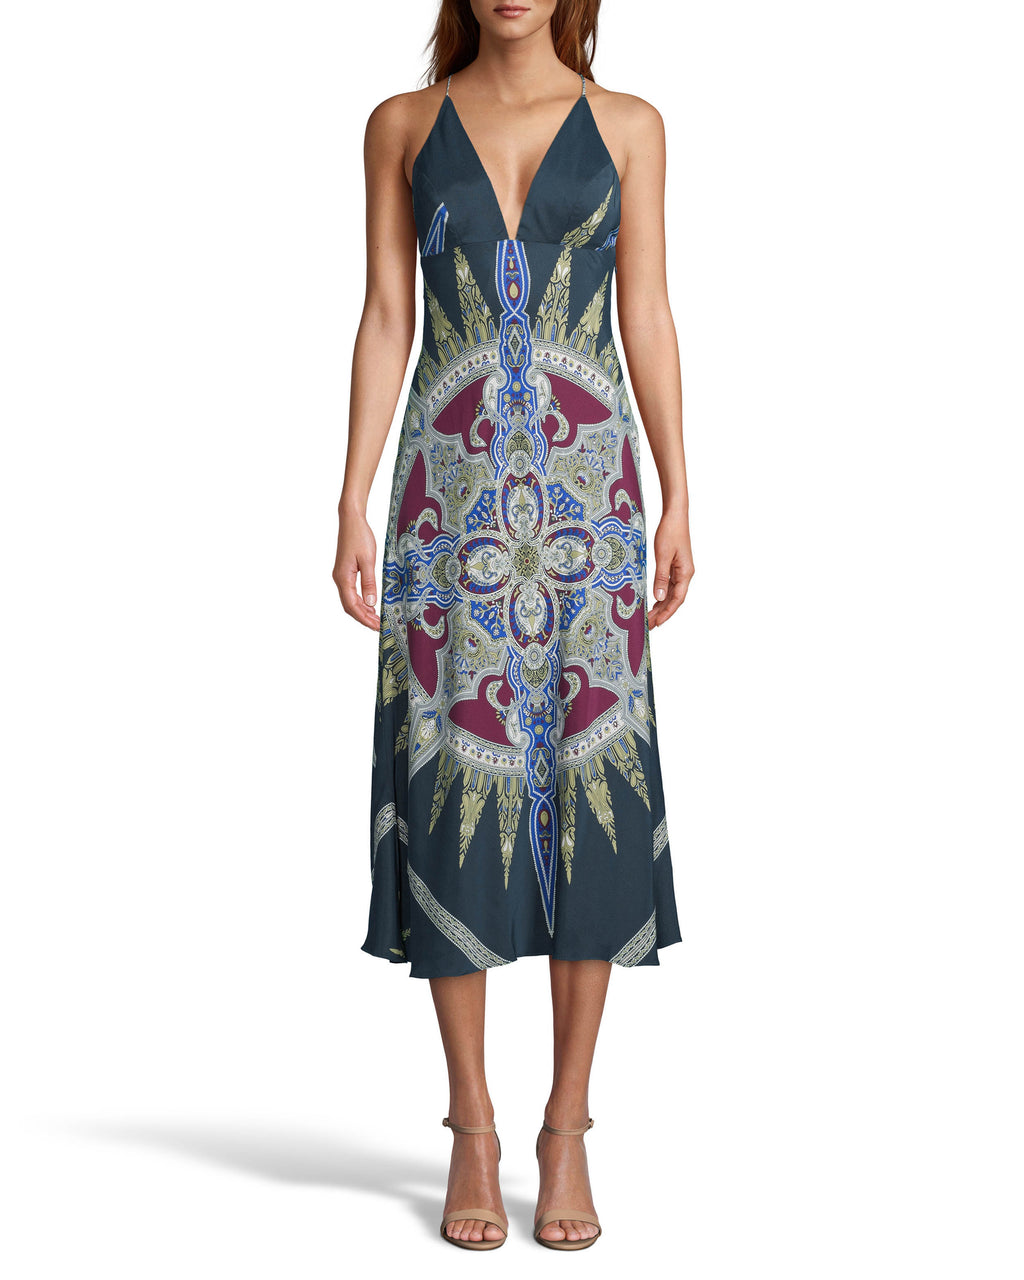 CE18150 - INDIGO MEDALLION SILK MIDI SLIP DRESS - dresses - long - The perfect transition piece. This lightweight silk slip dress is designed in our new indigo medallion print and is perfect for warm fall days. Featuring slim spaghetti straps that cross in the back and a flattering v neck. Add 1 line break Stylist tip: Pair with a leather jacket like on the Fall 2020 Runway for a cool, stylish look.